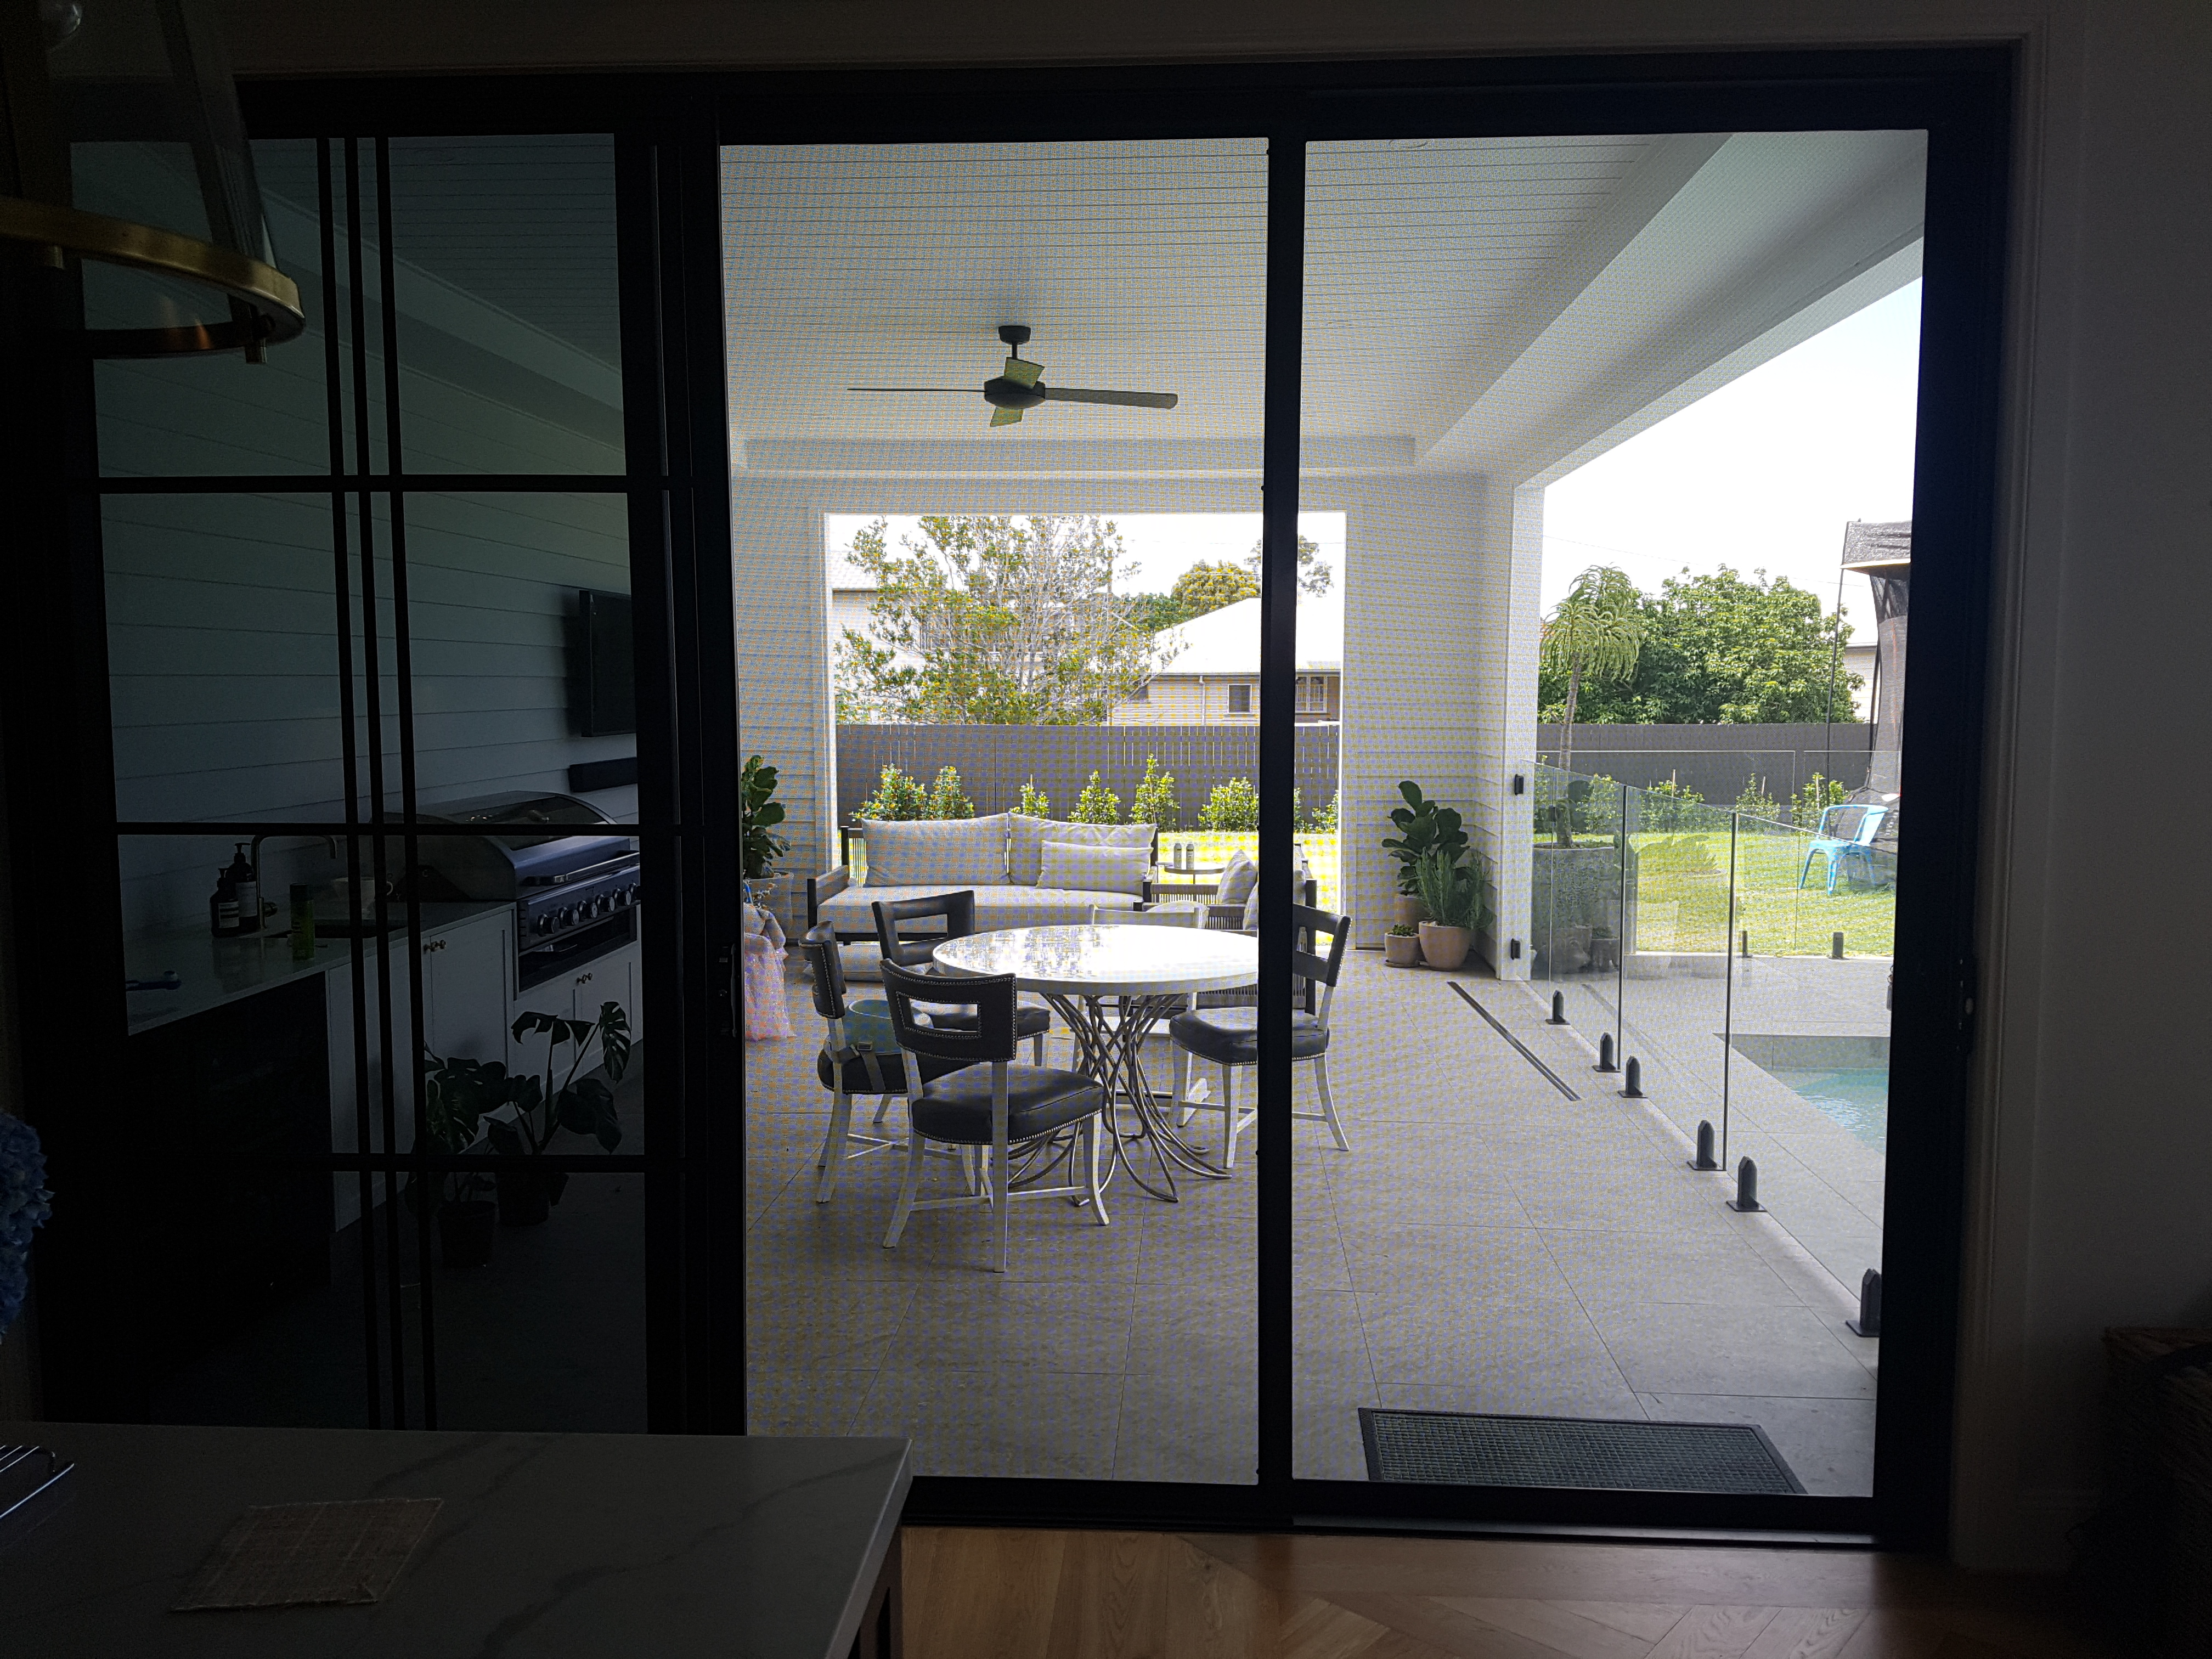 Enjoy a clear view through stainless steel security doors